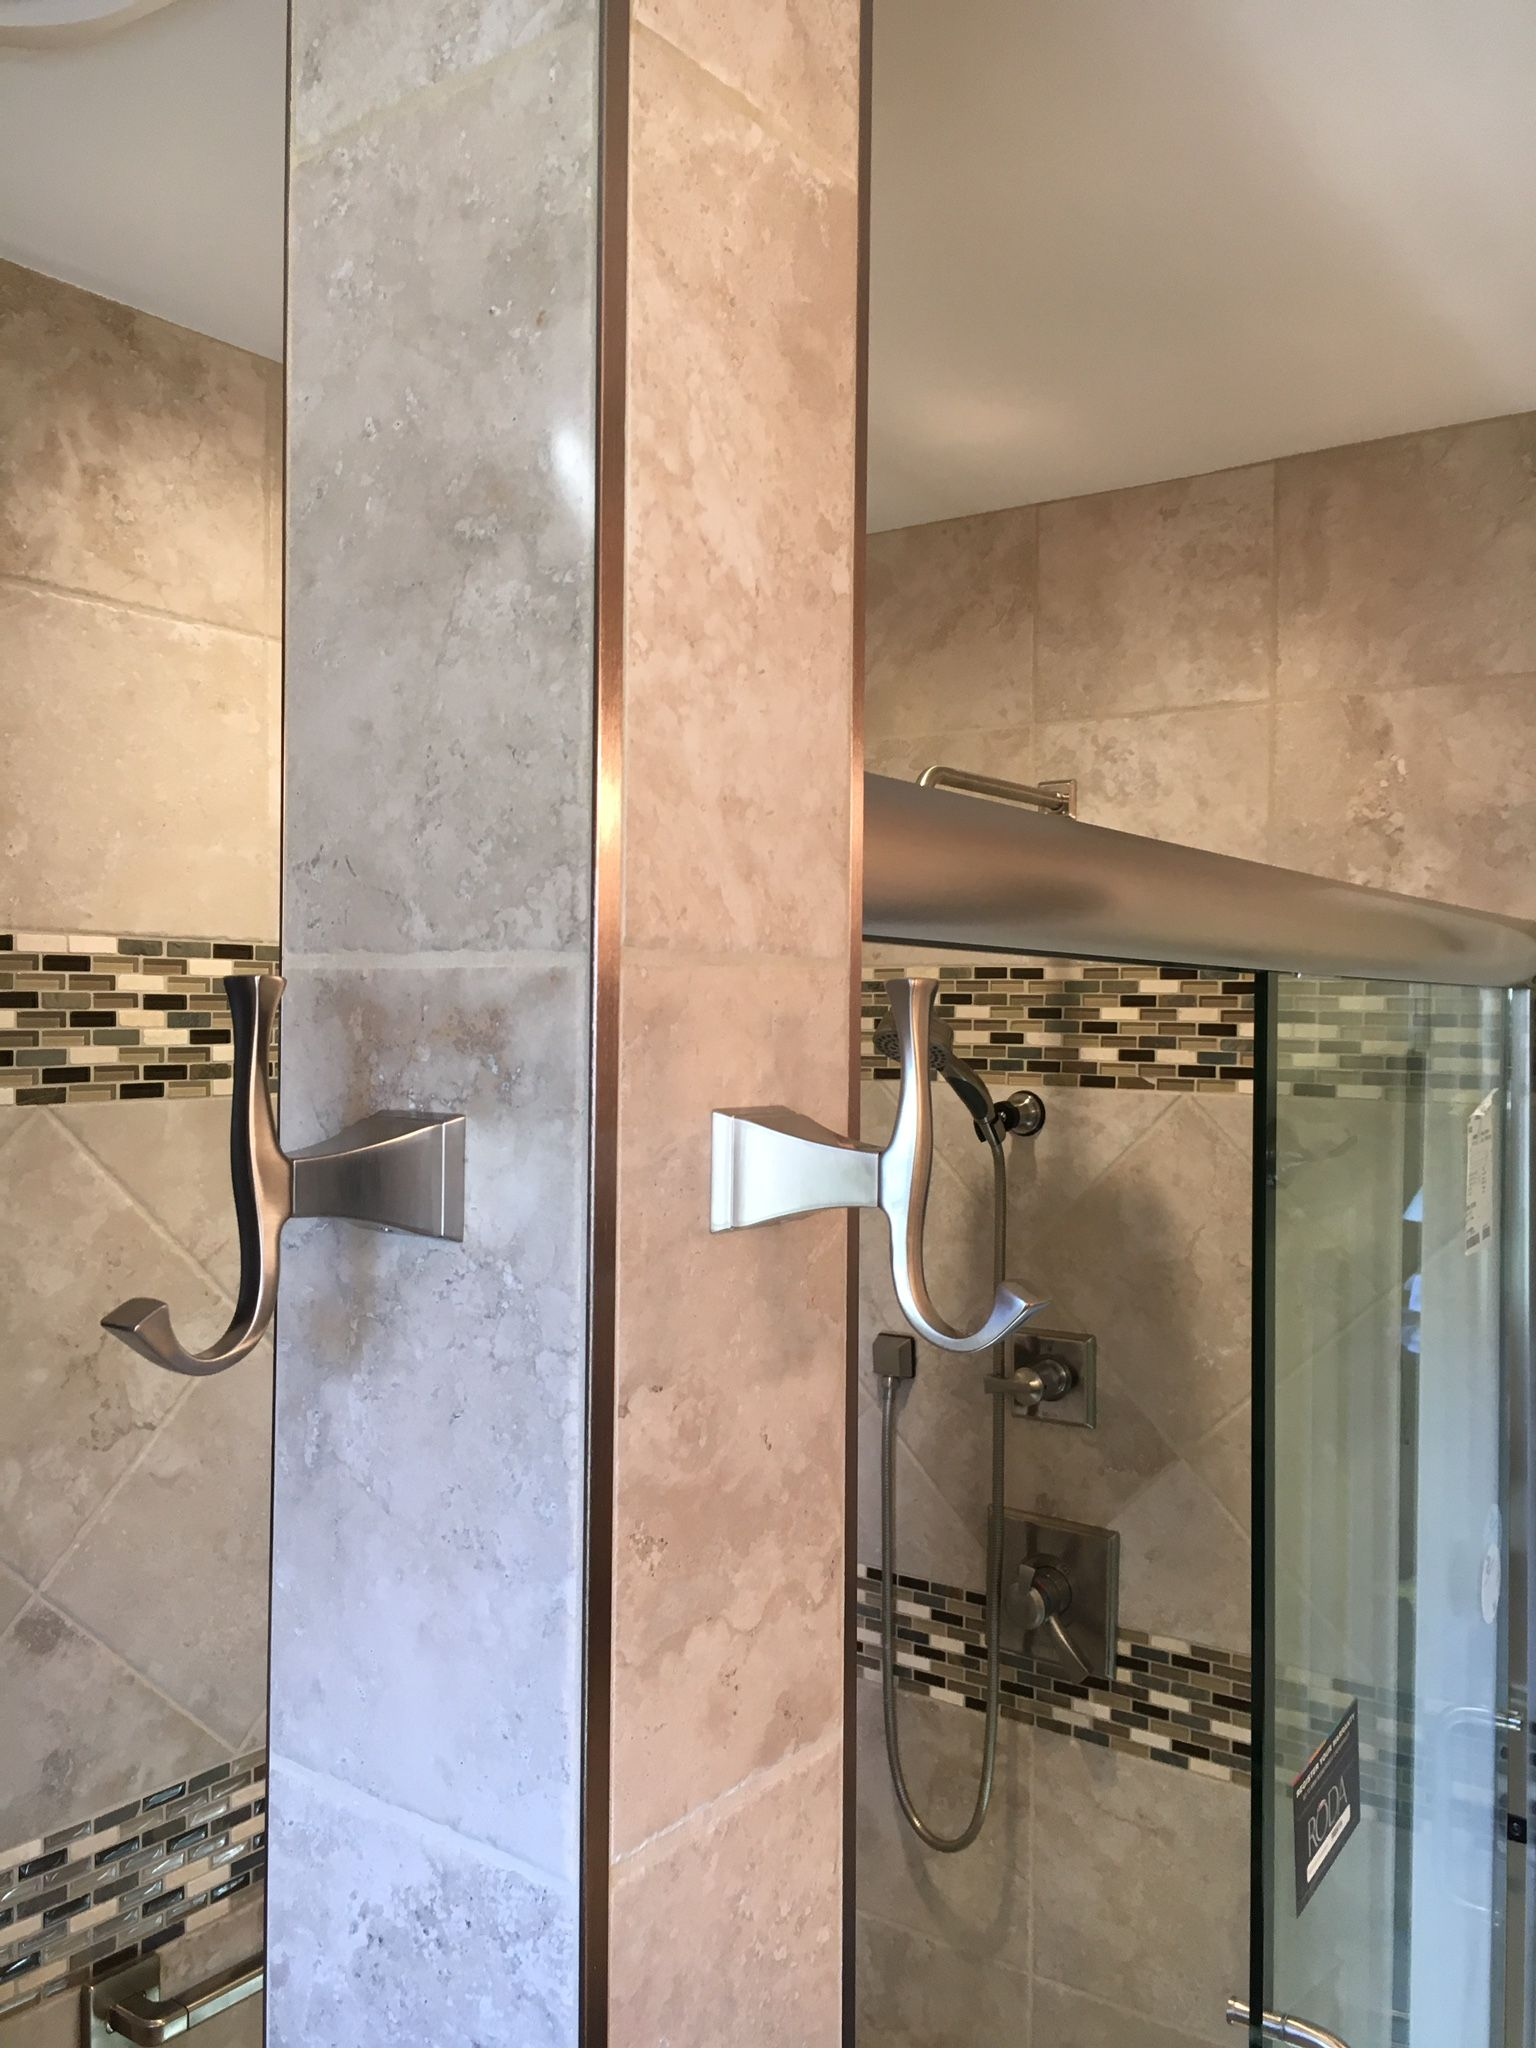 Stainless Steel Bathroom Accents With Metal Schluter Strips To Edge Out Tile Tan Tile Neutral